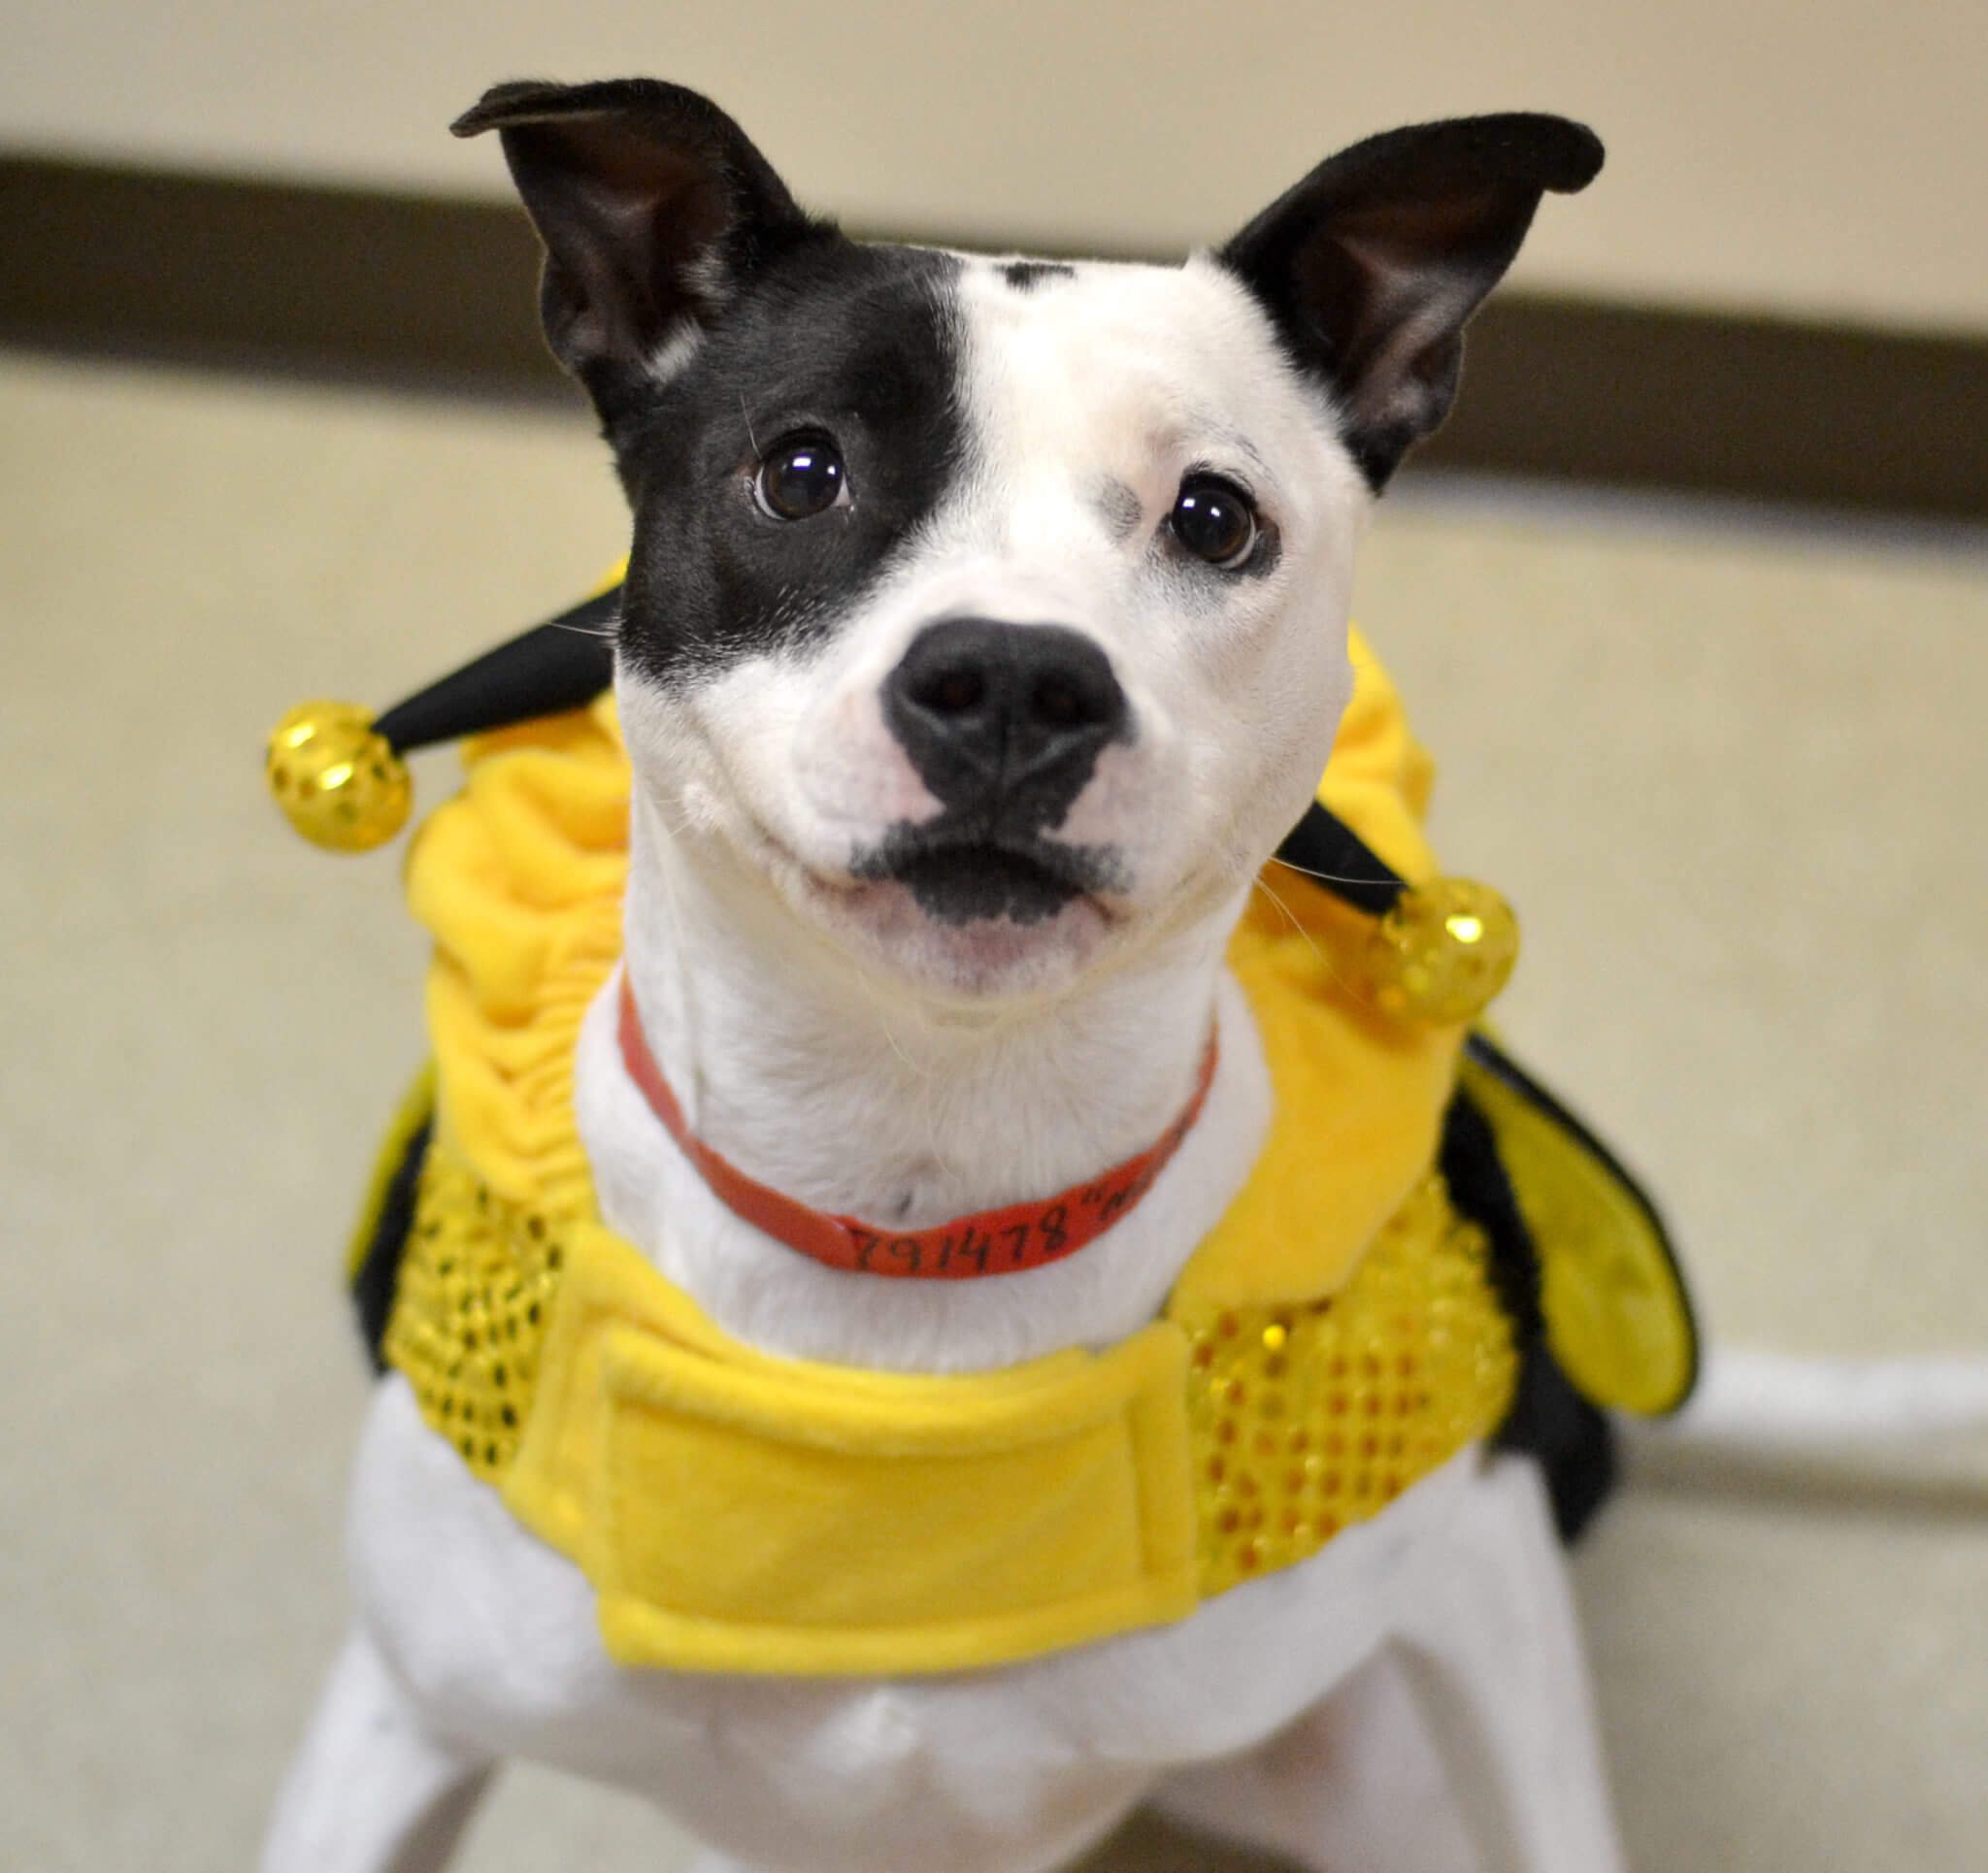 Molly is a happy and active young pit bull mix who was very excited about dressing up as a bee!